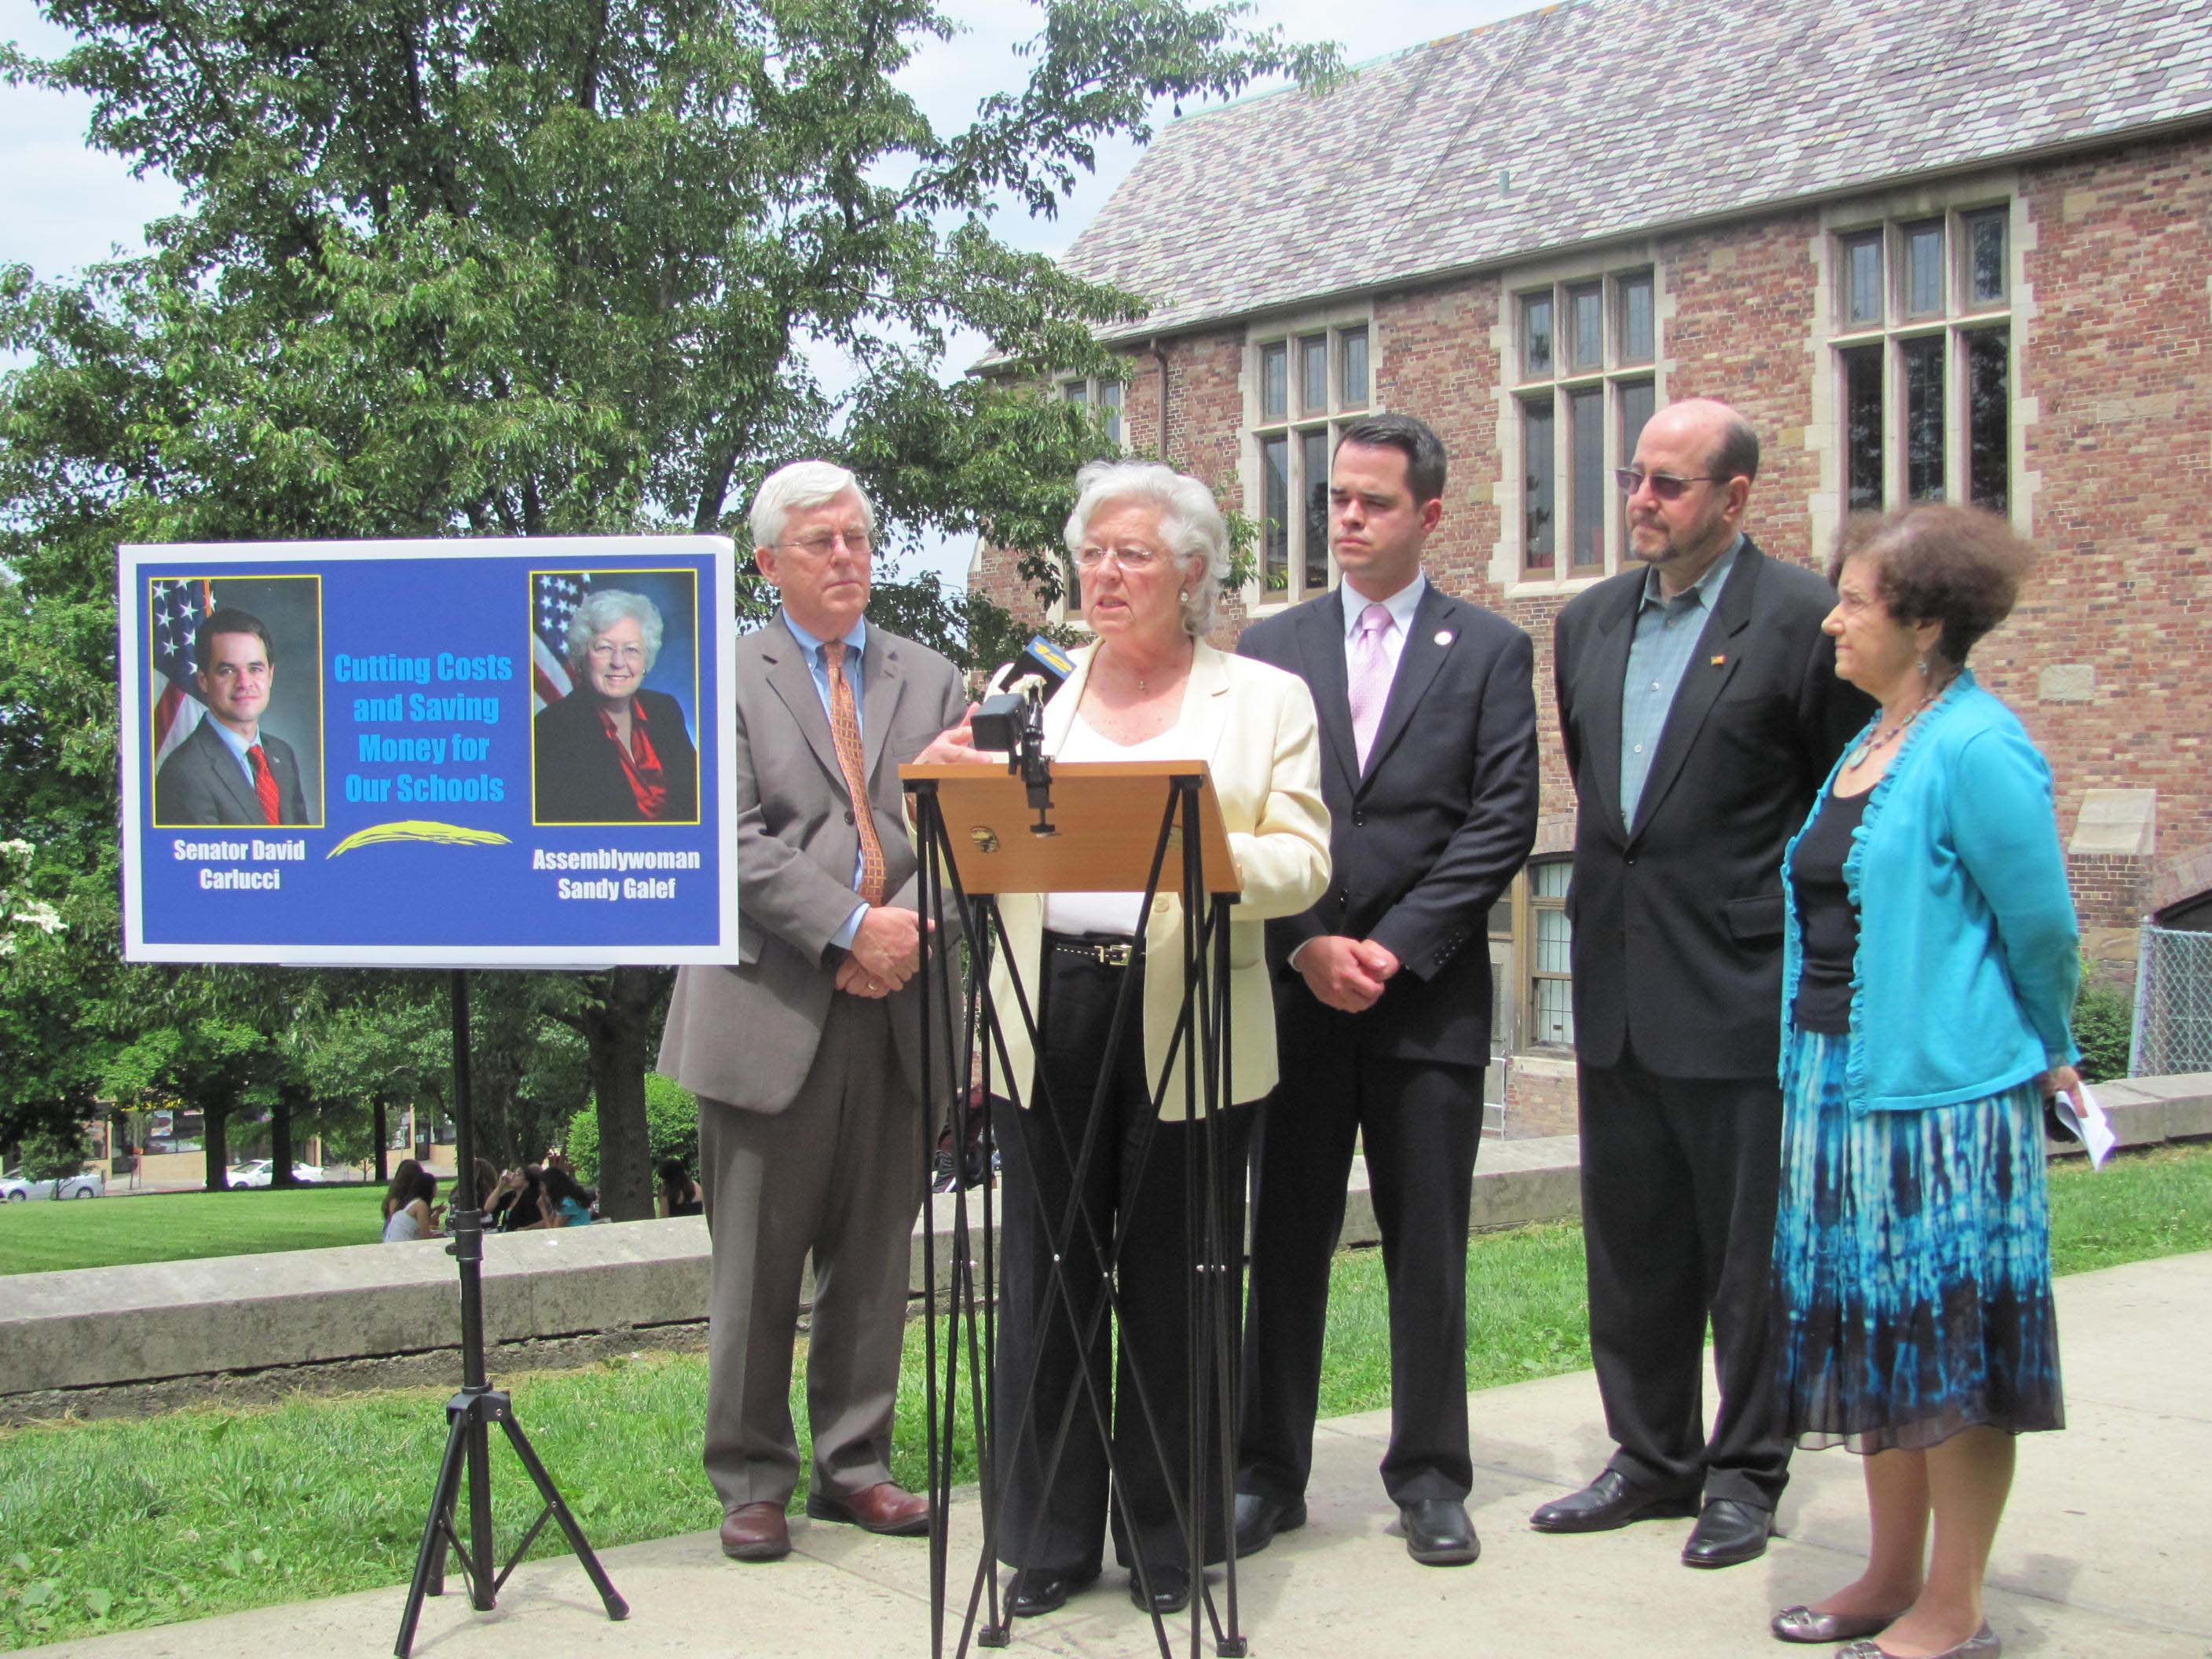 Assemblywoman Sandy Galefy spoke about the bills she and state Senator David Carlucci are introducing.